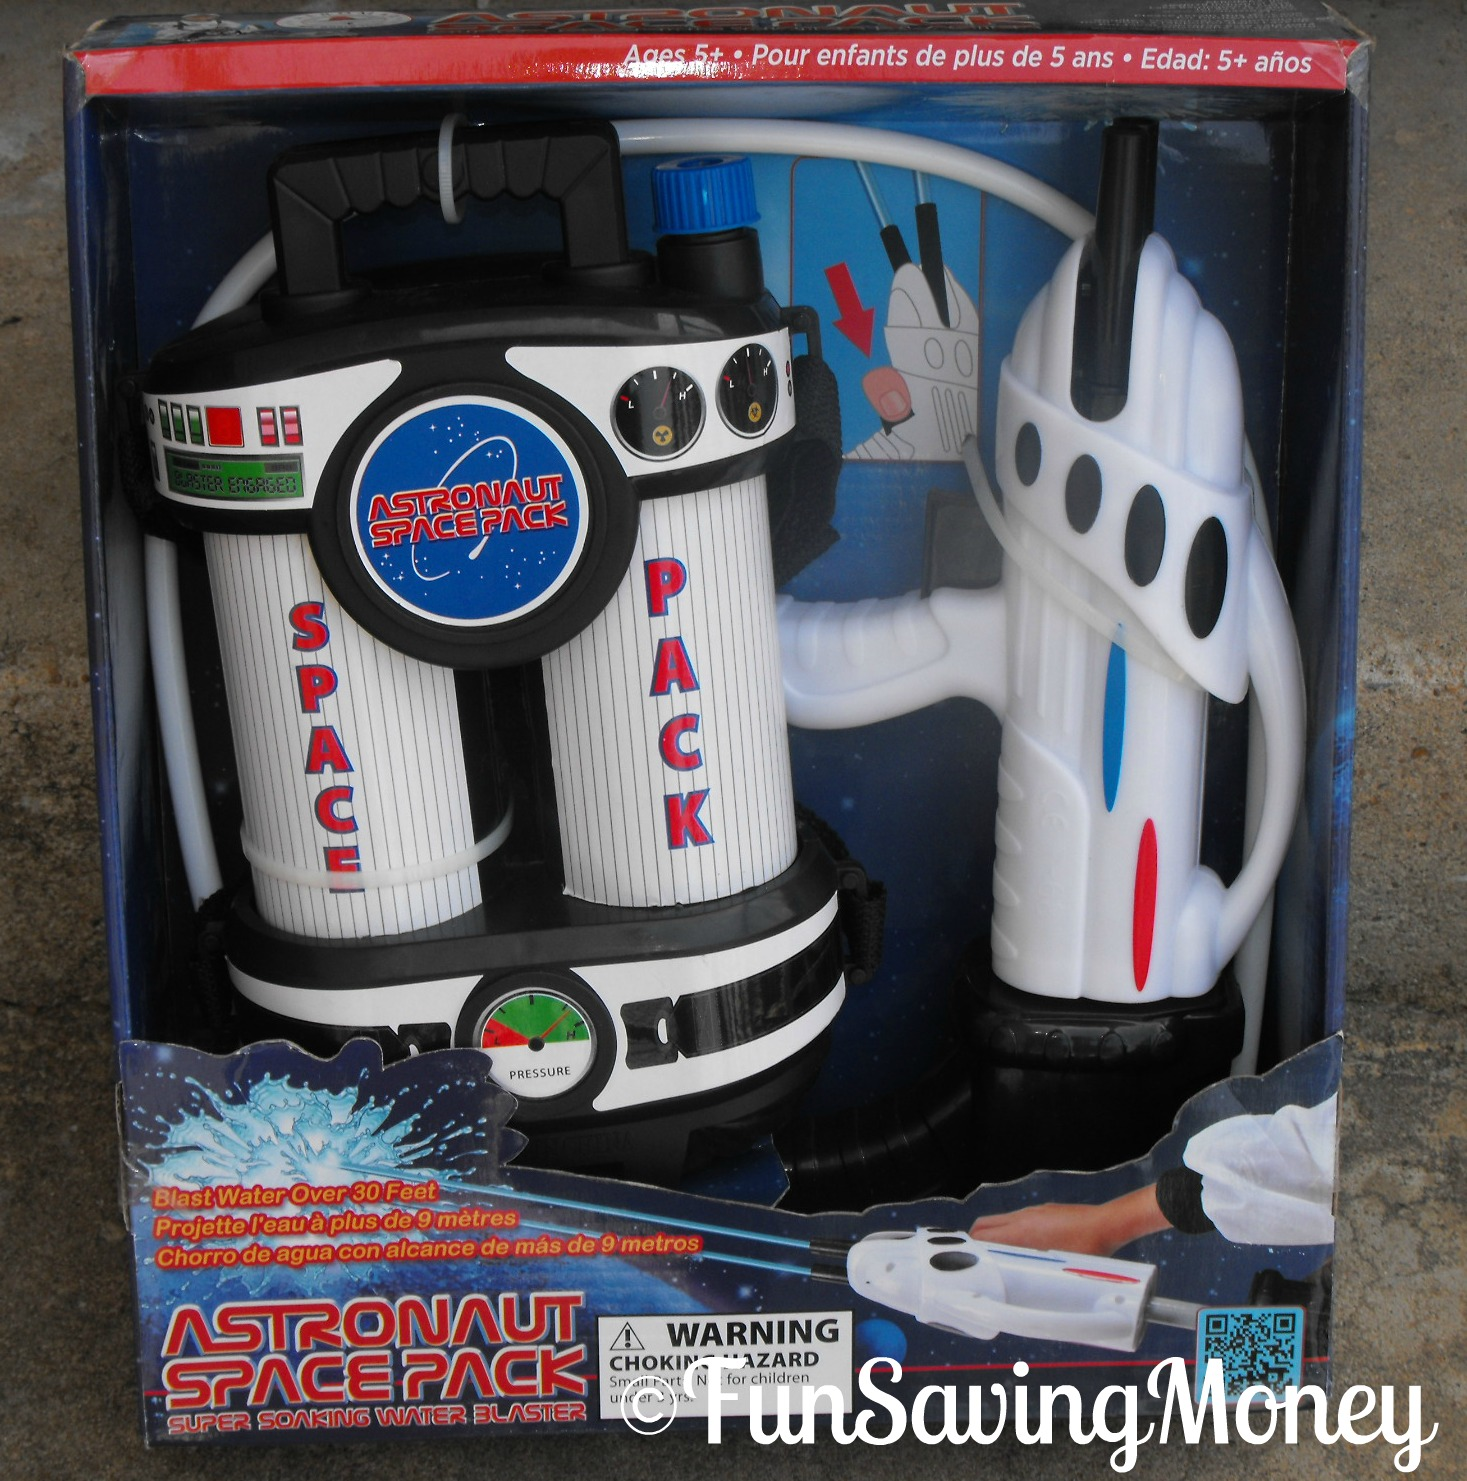 astronaut space pack water blaster - photo #2